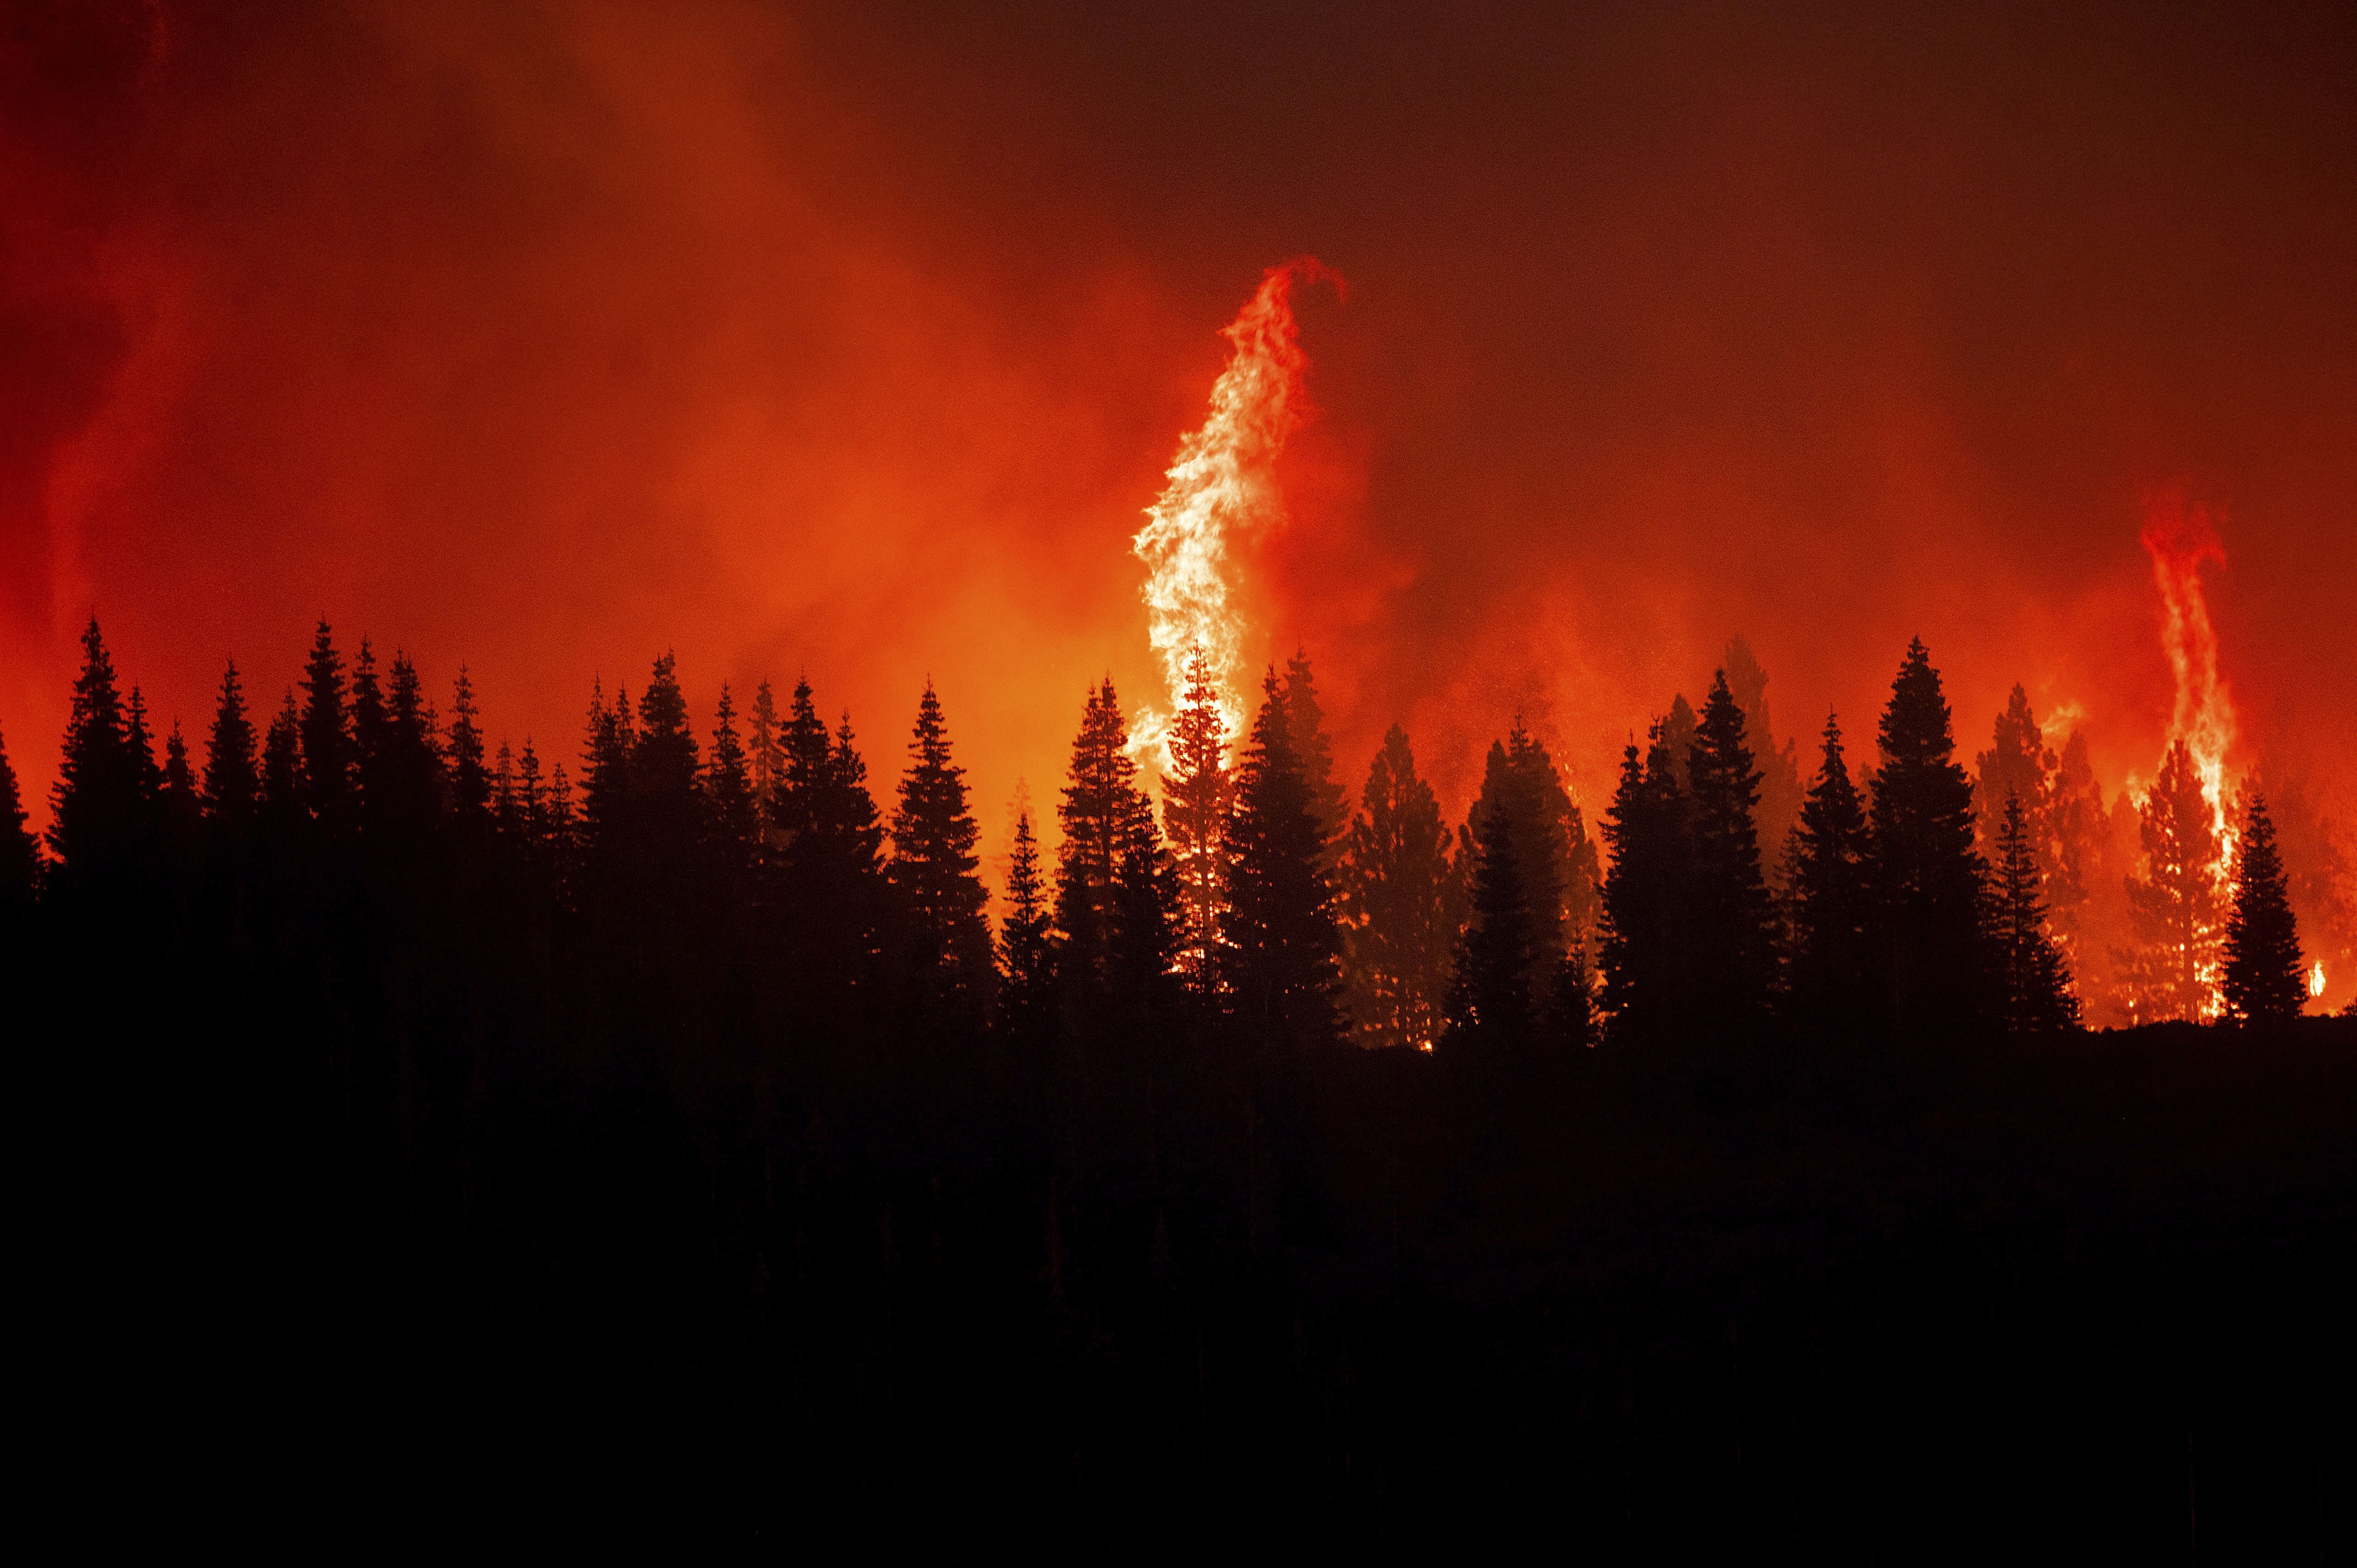 Progress made against fires, evacuations lifted